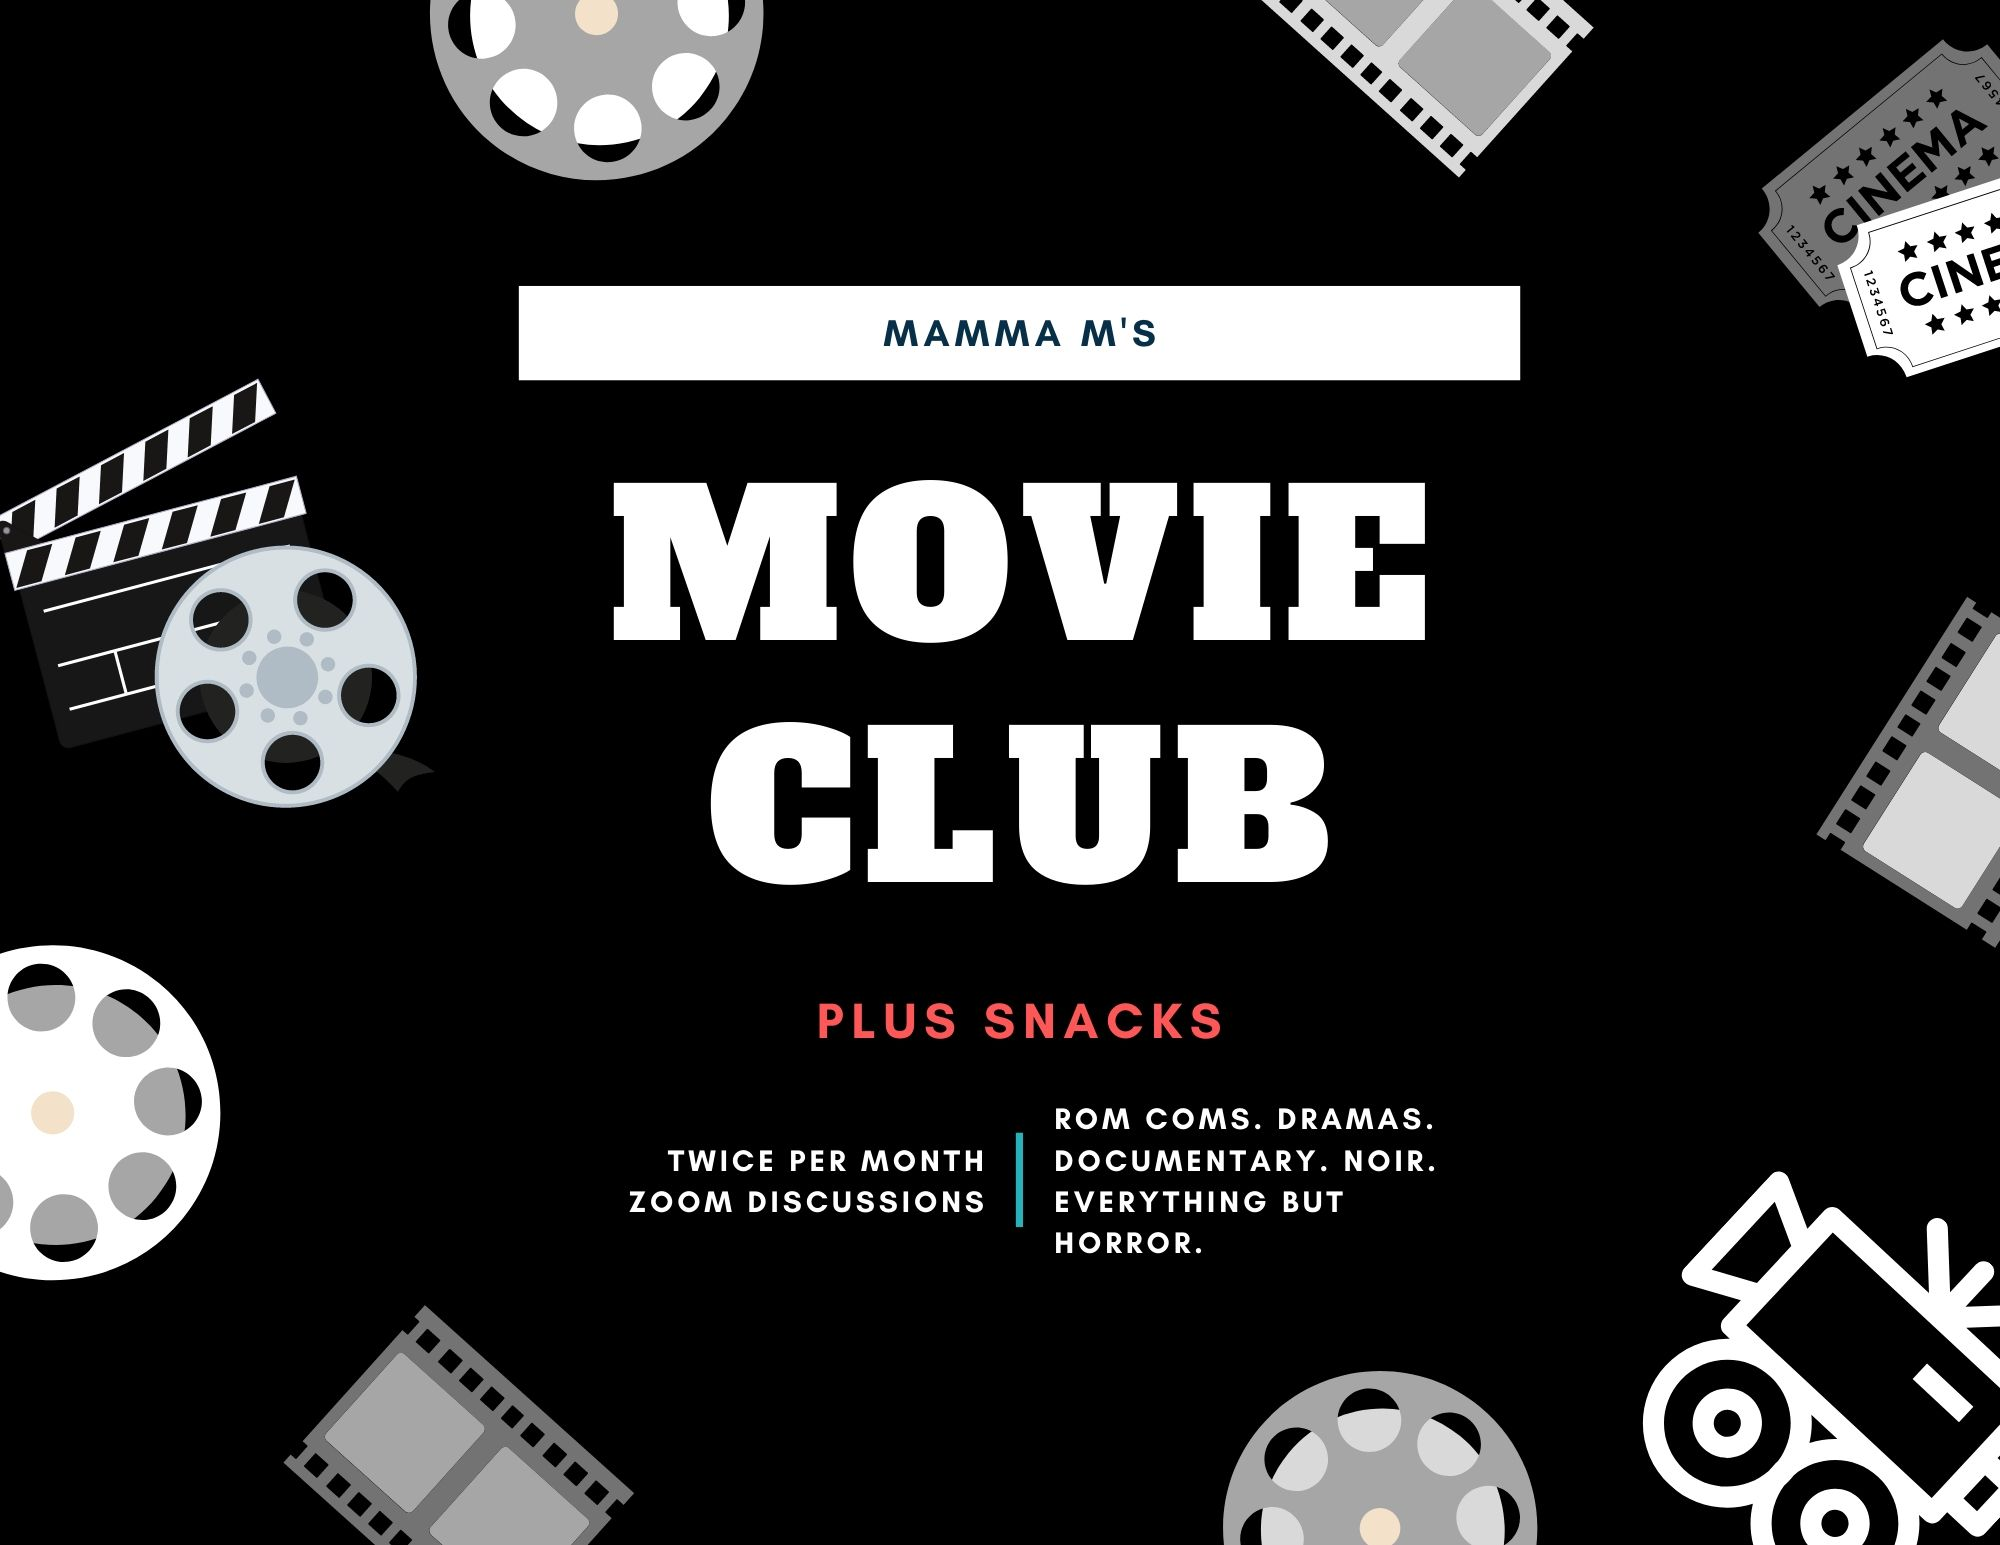 Mamma M's Movie Club